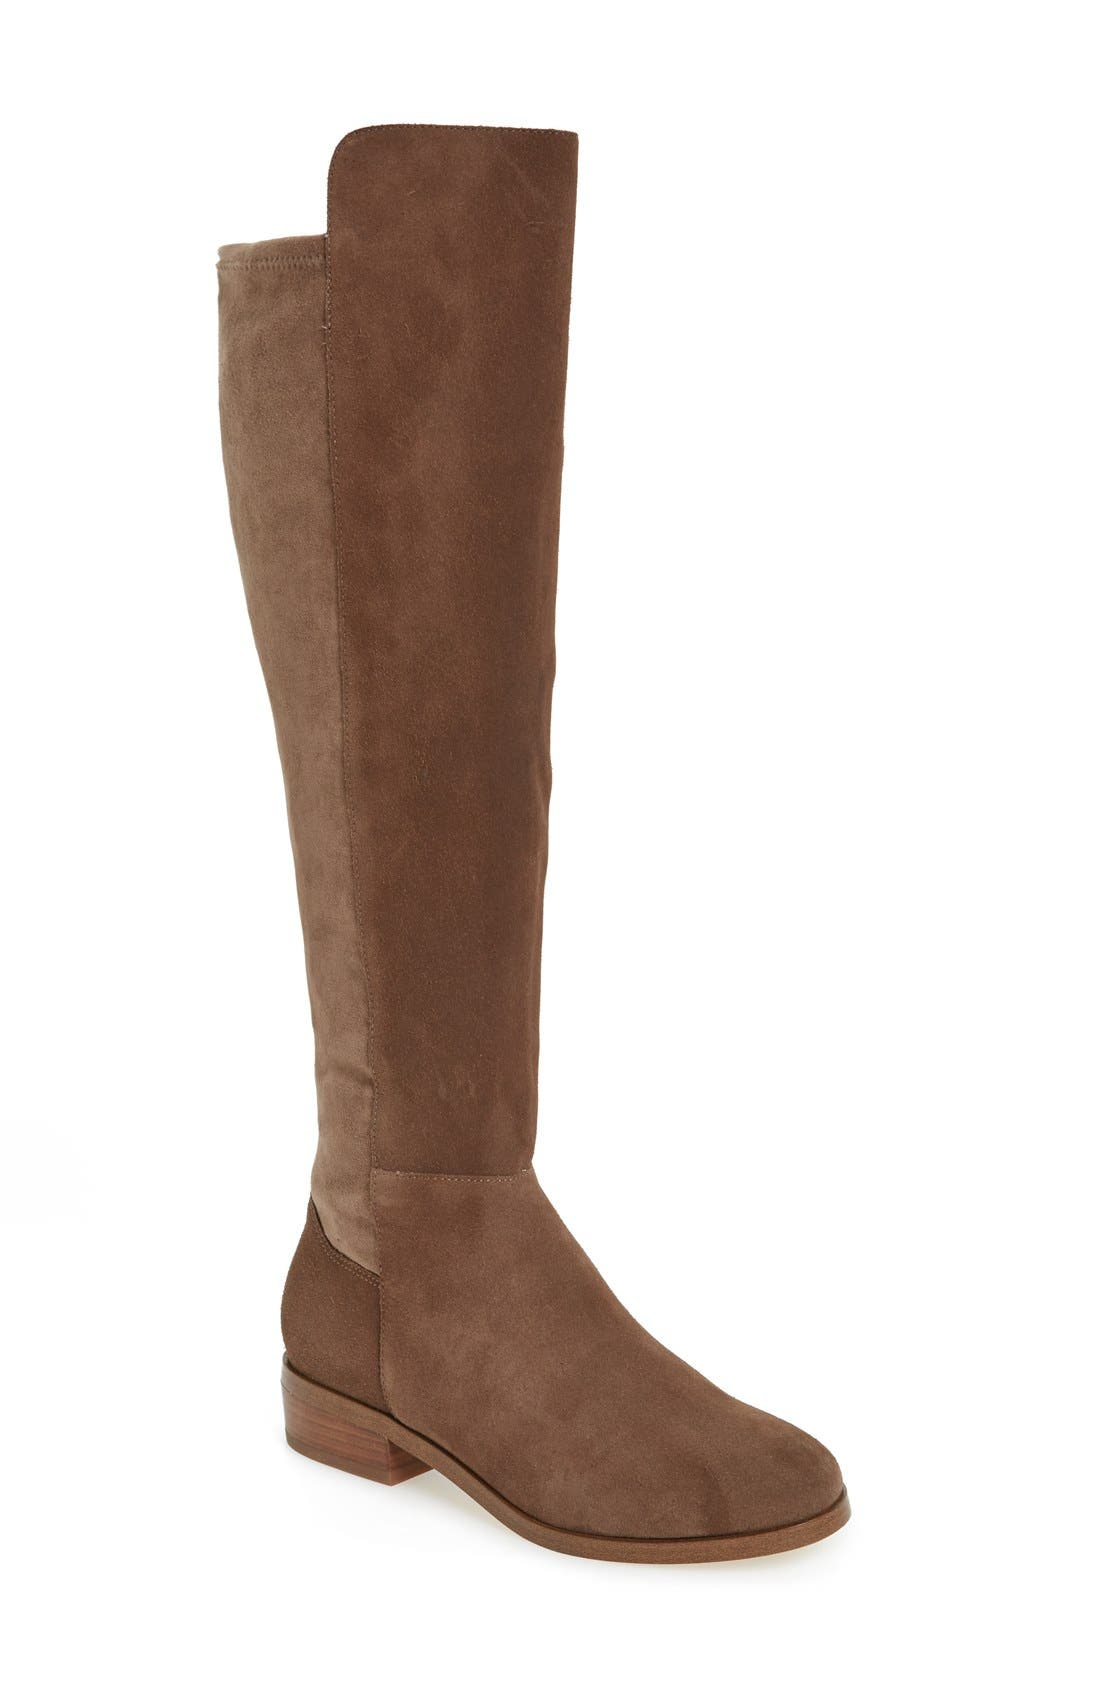 Calypso Over the Knee Boot,                             Main thumbnail 1, color,                             Taupe Suede